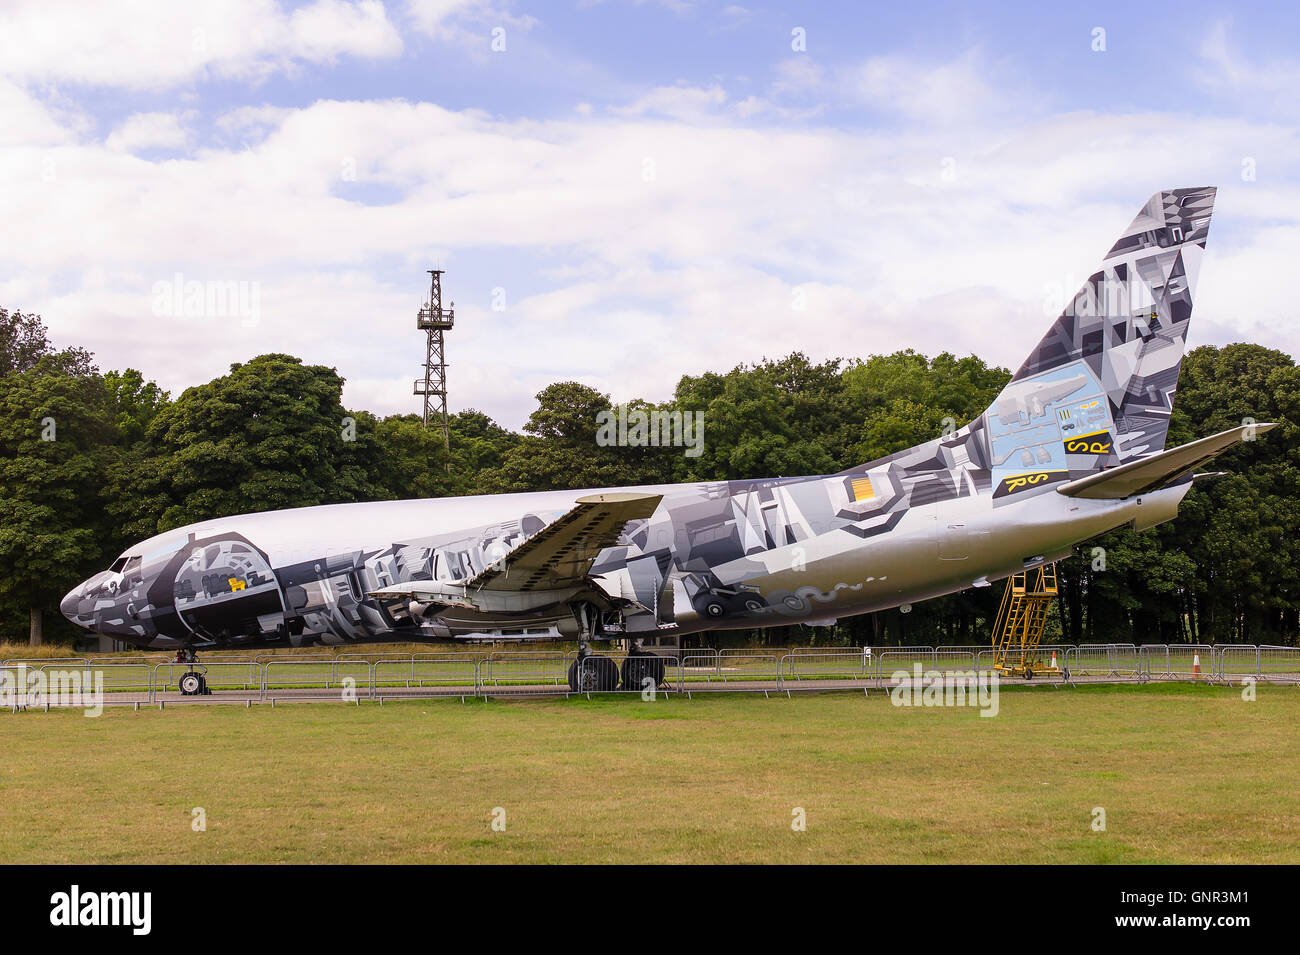 A retired civil airliner painted by art students as a project - Stock Image